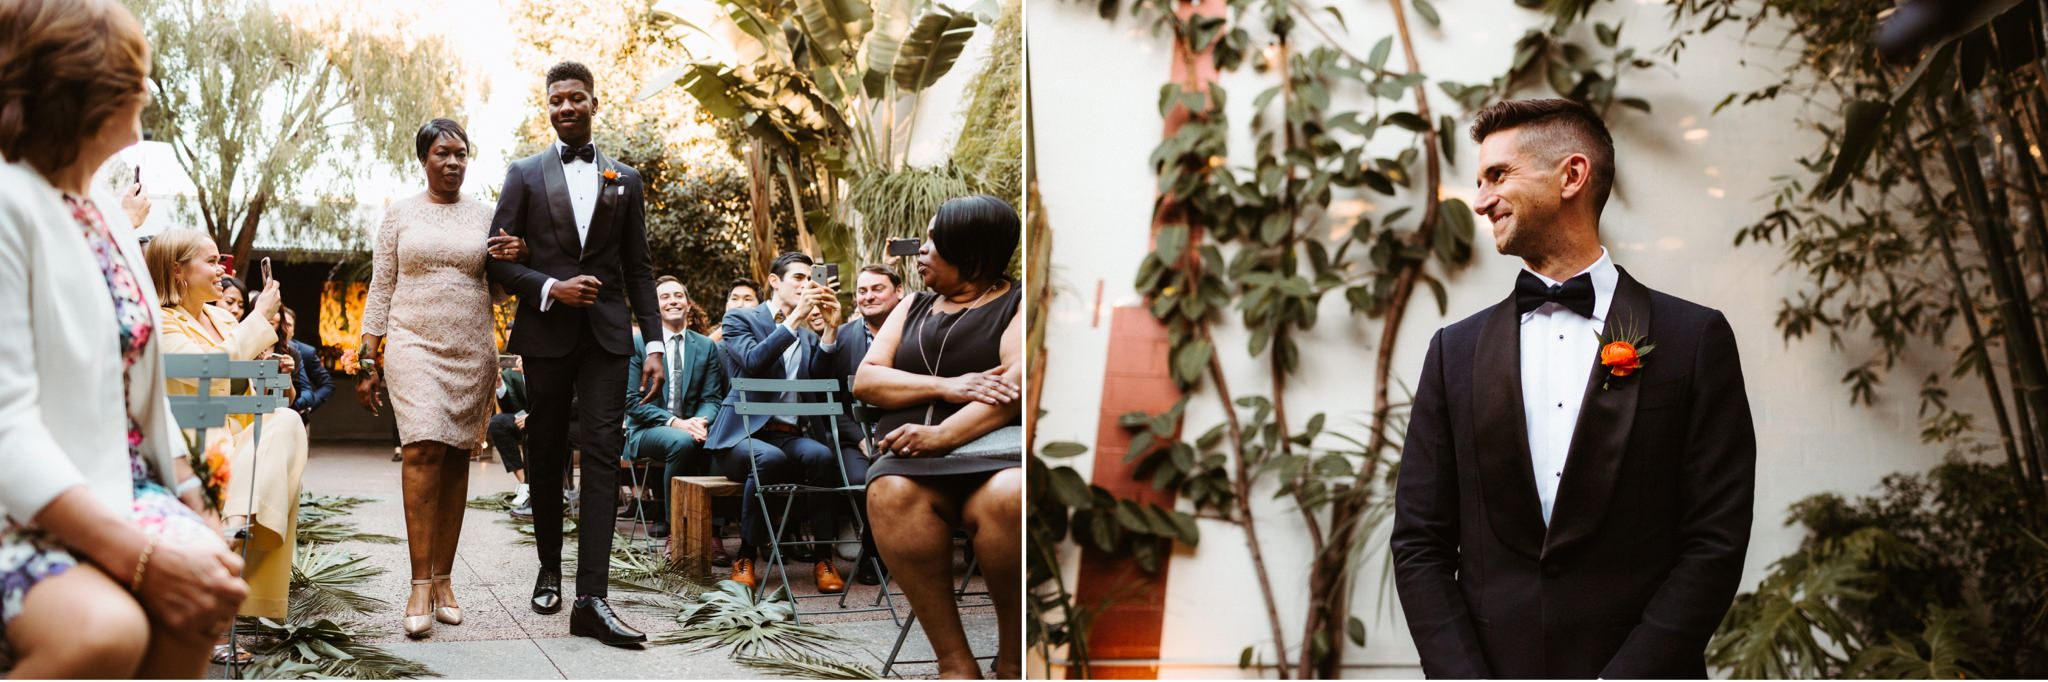 dtla wedding photographer 064